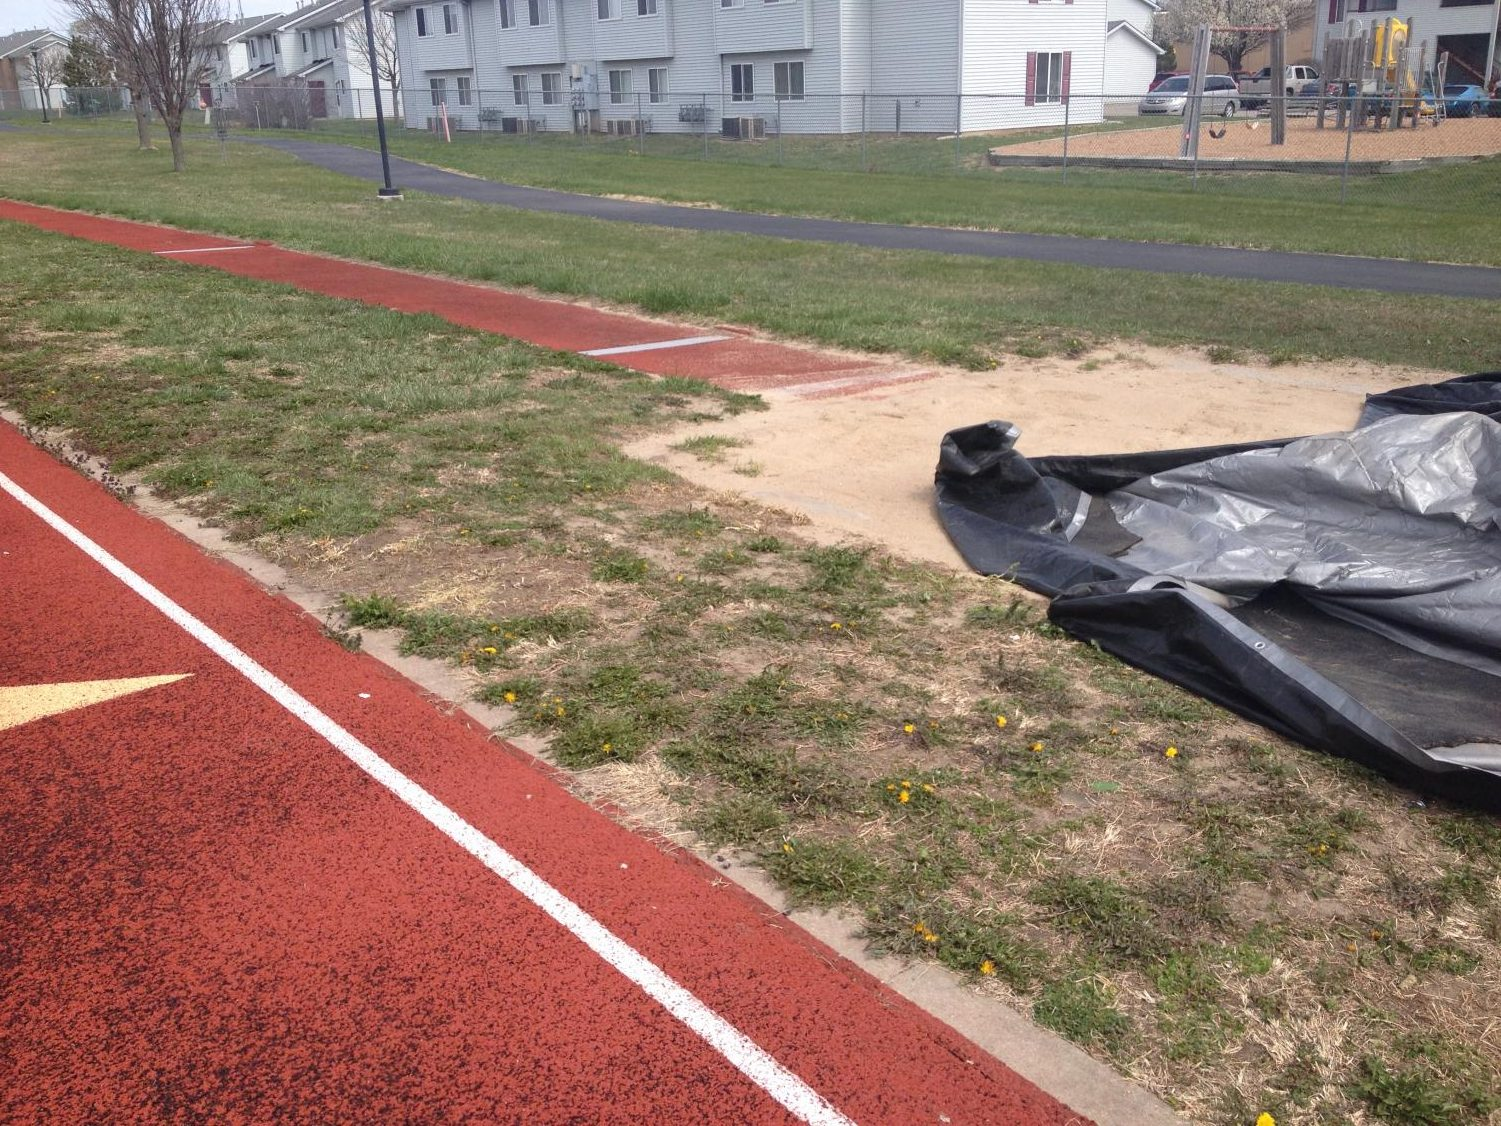 The long jump pit at the EMS track.